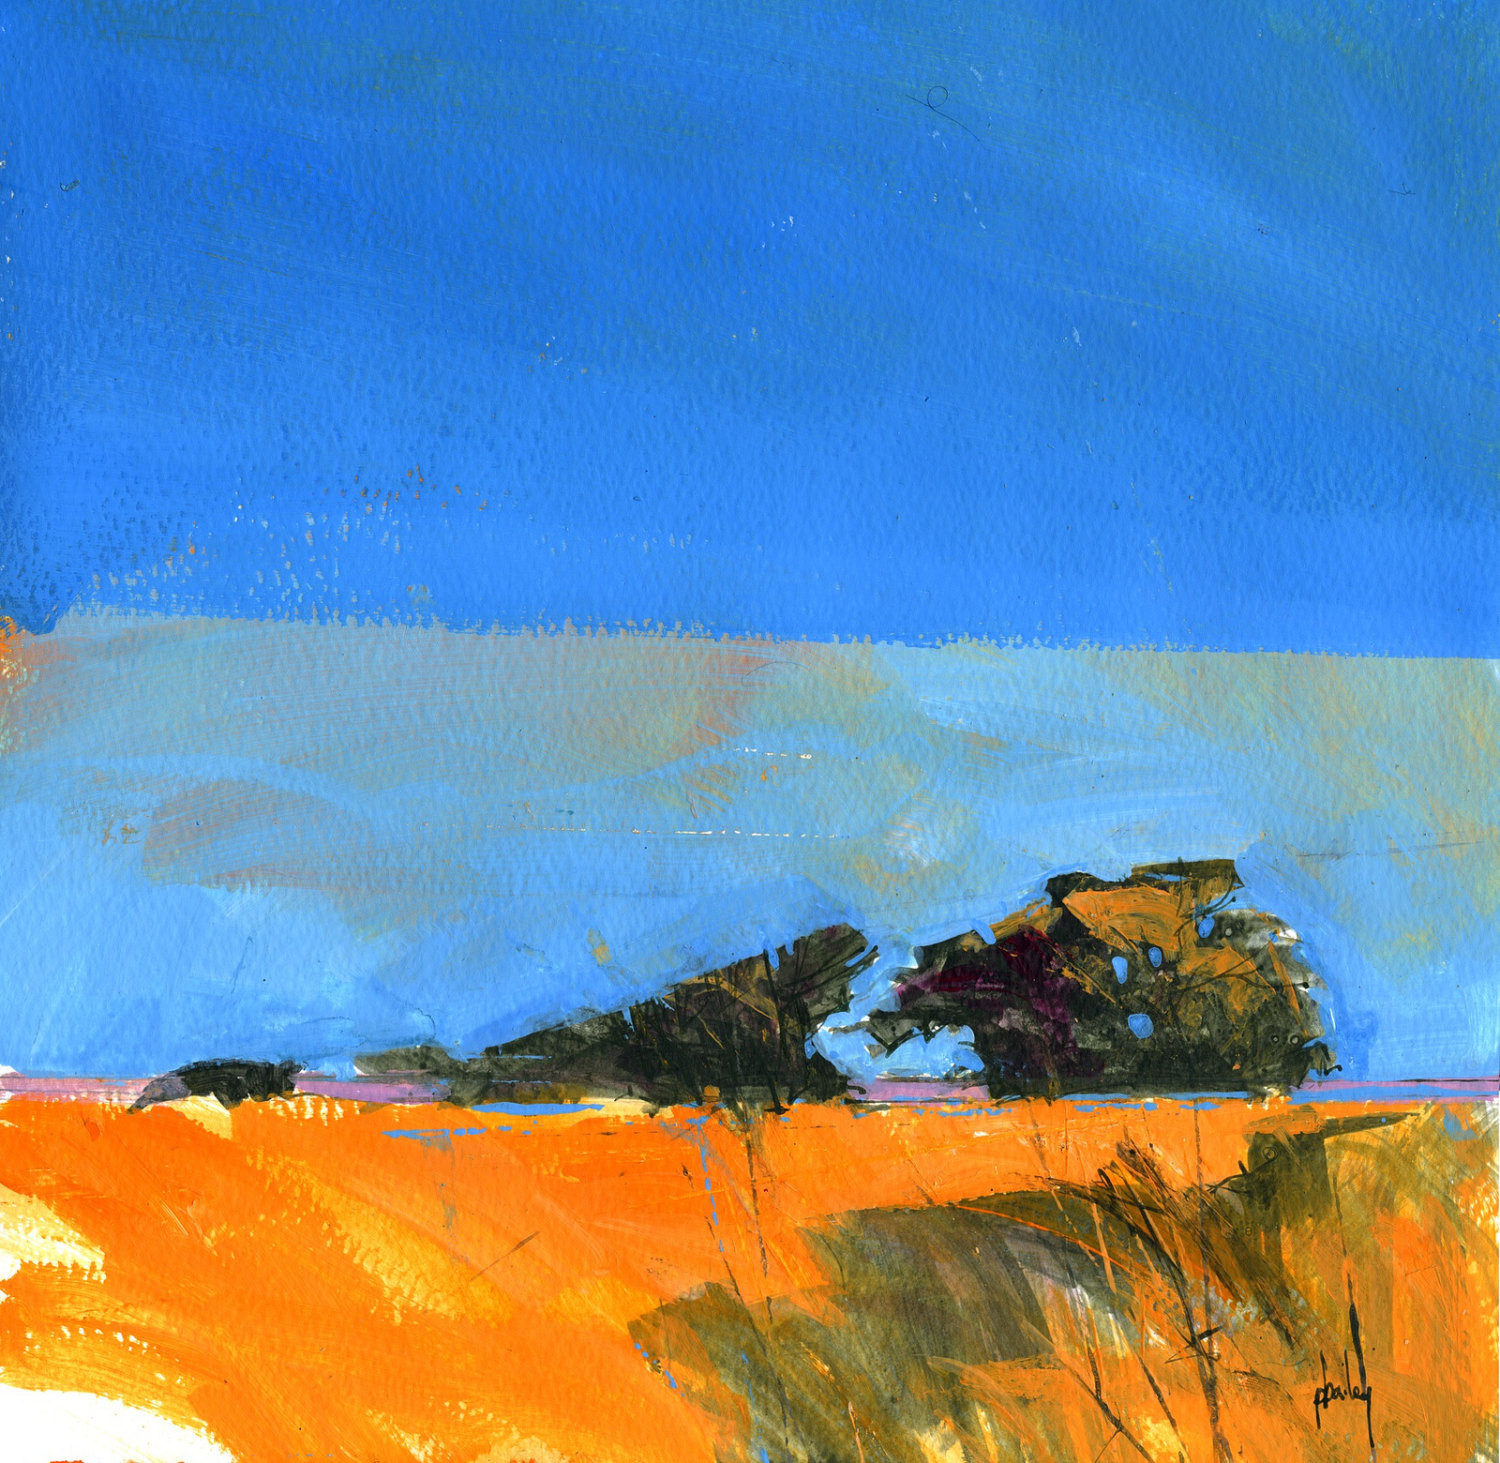 Best ideas about Abstract Landscape Paintings . Save or Pin Original semi abstract landscape painting by Paul Bailey Now.